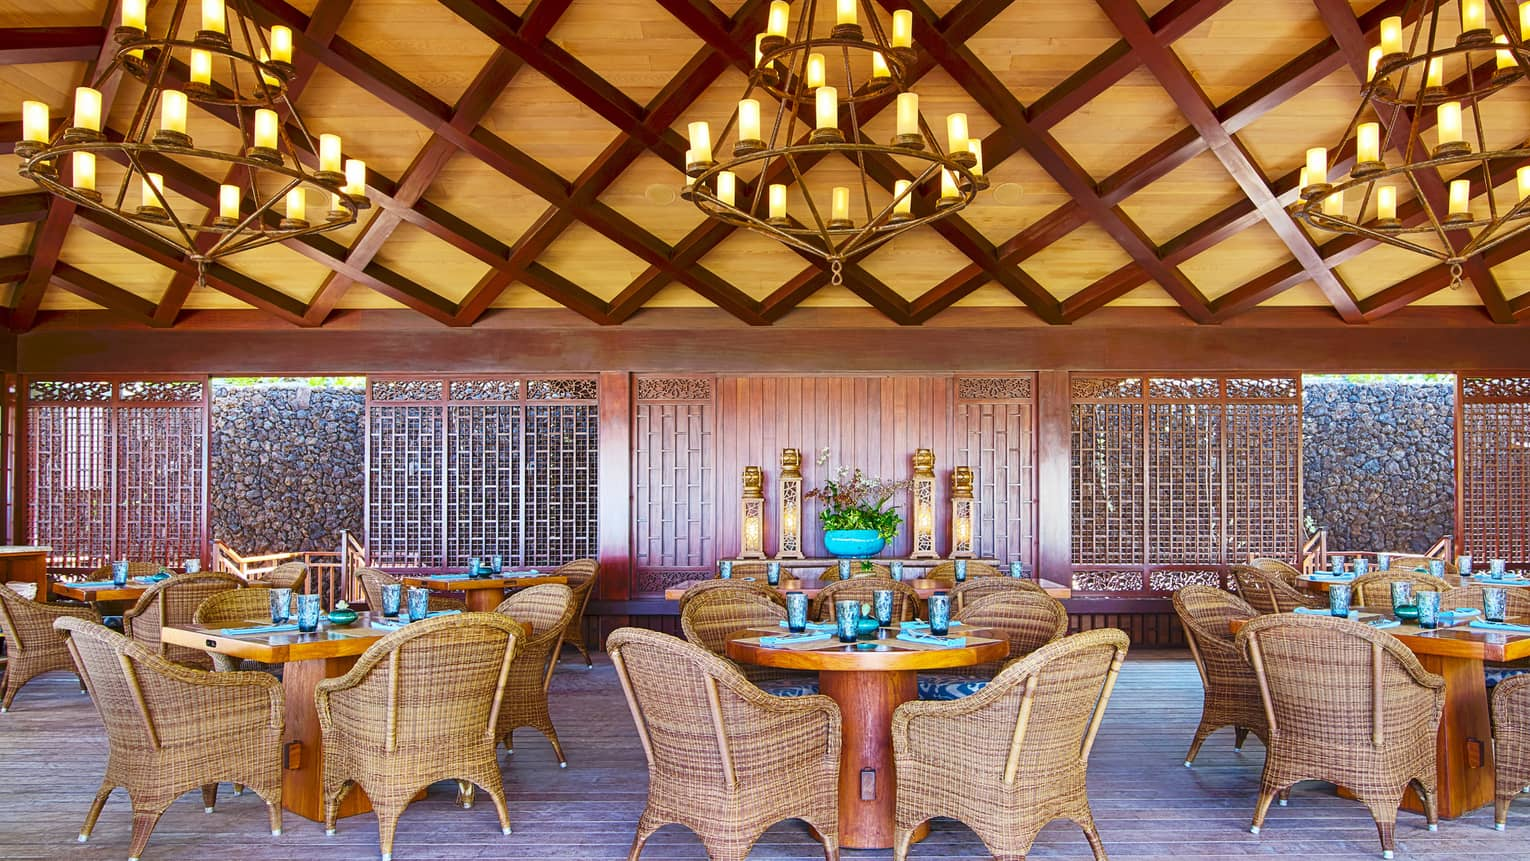 Dining area under bamboo and lattice ceiling with three chandeliers, round dining tables and wicker chairs